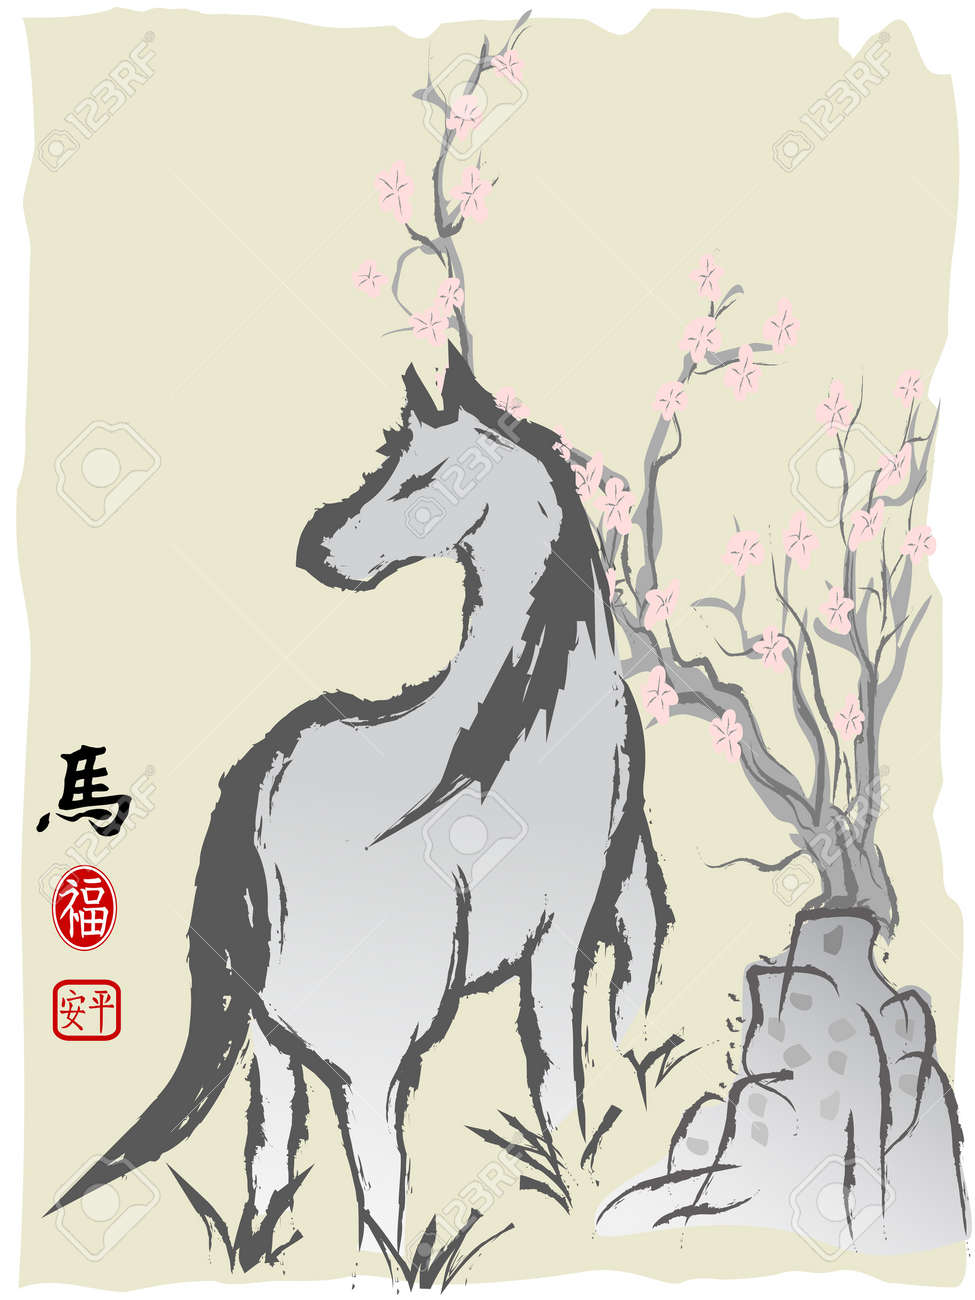 The Chinese Painting Of Horse For Chinese Horse New Year Royalty Free Cliparts Vectors And Stock Illustration Image 24899201